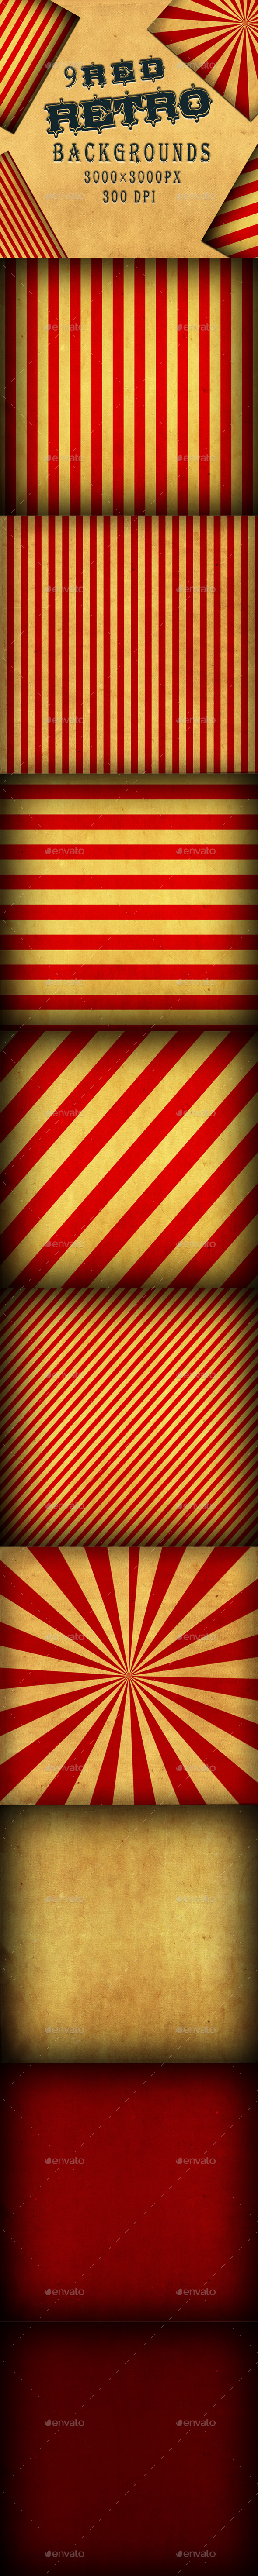 Retro Backgrounds - Backgrounds Graphics